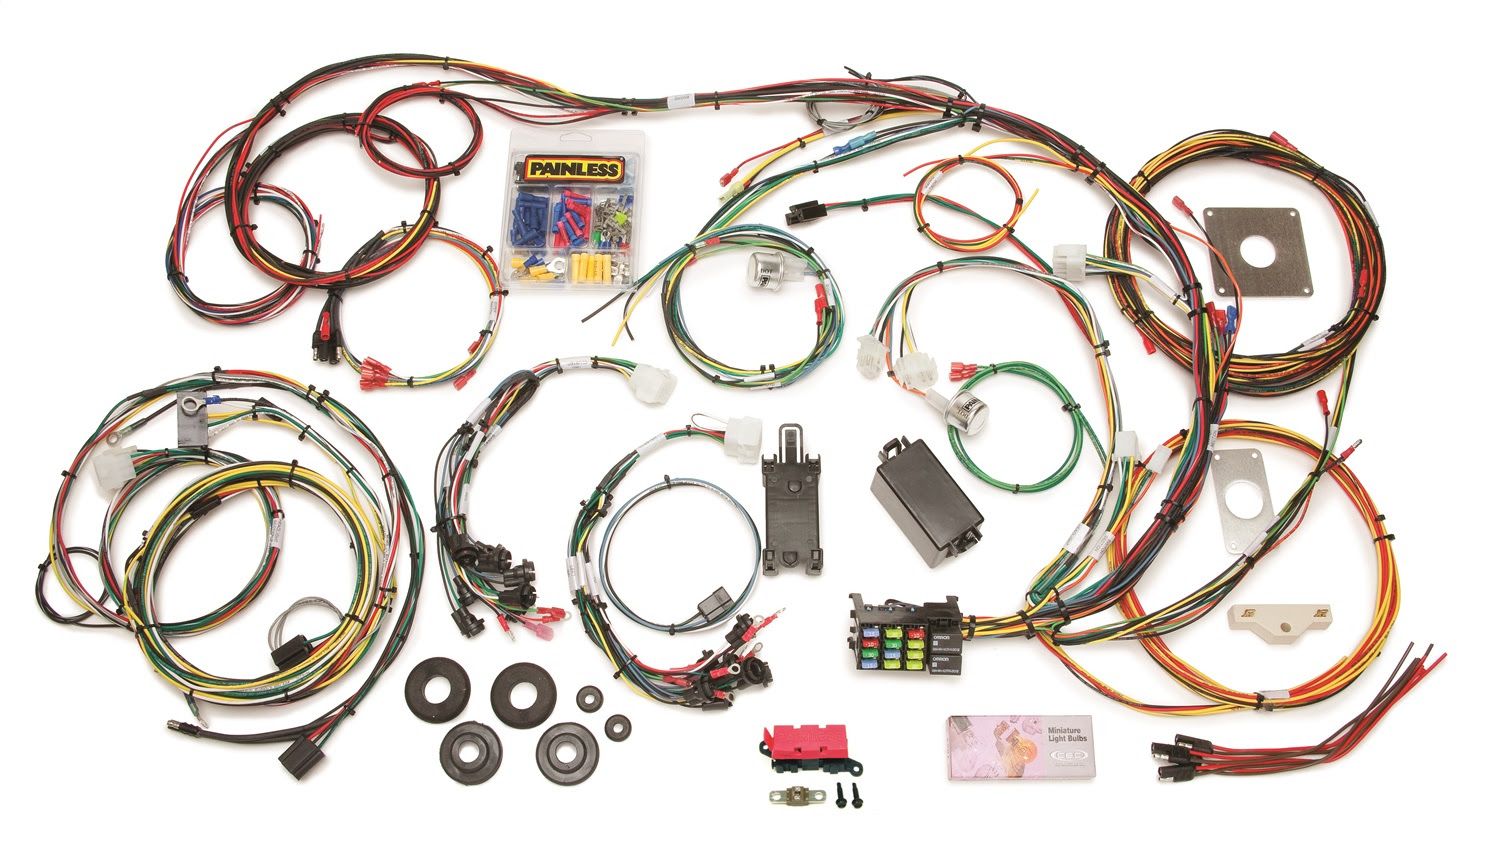 Chassi Wiring Harnes